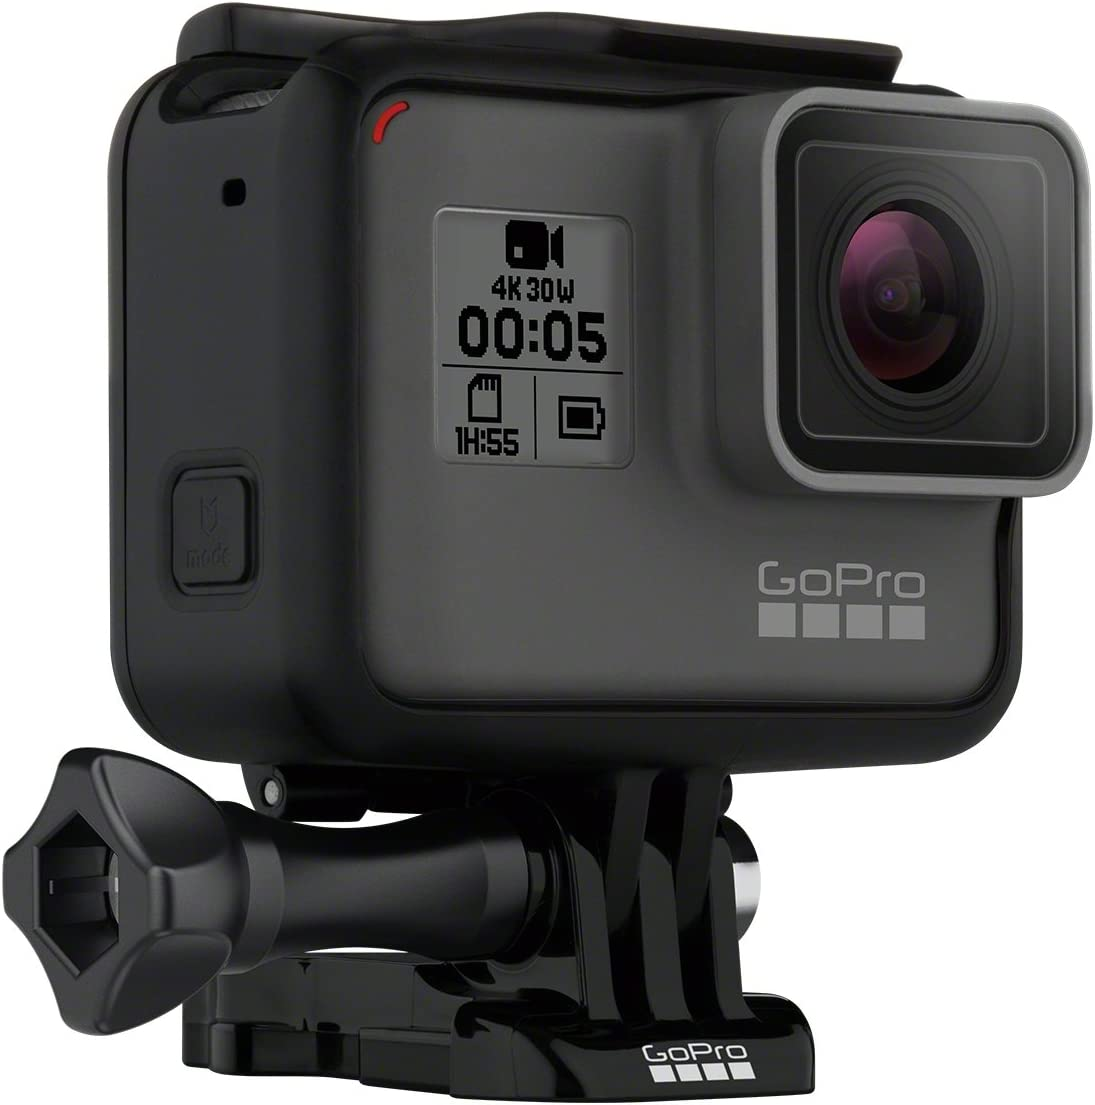 Top 15 Best Gopro For Kids (2020 Reviews & Buying Guide) 3